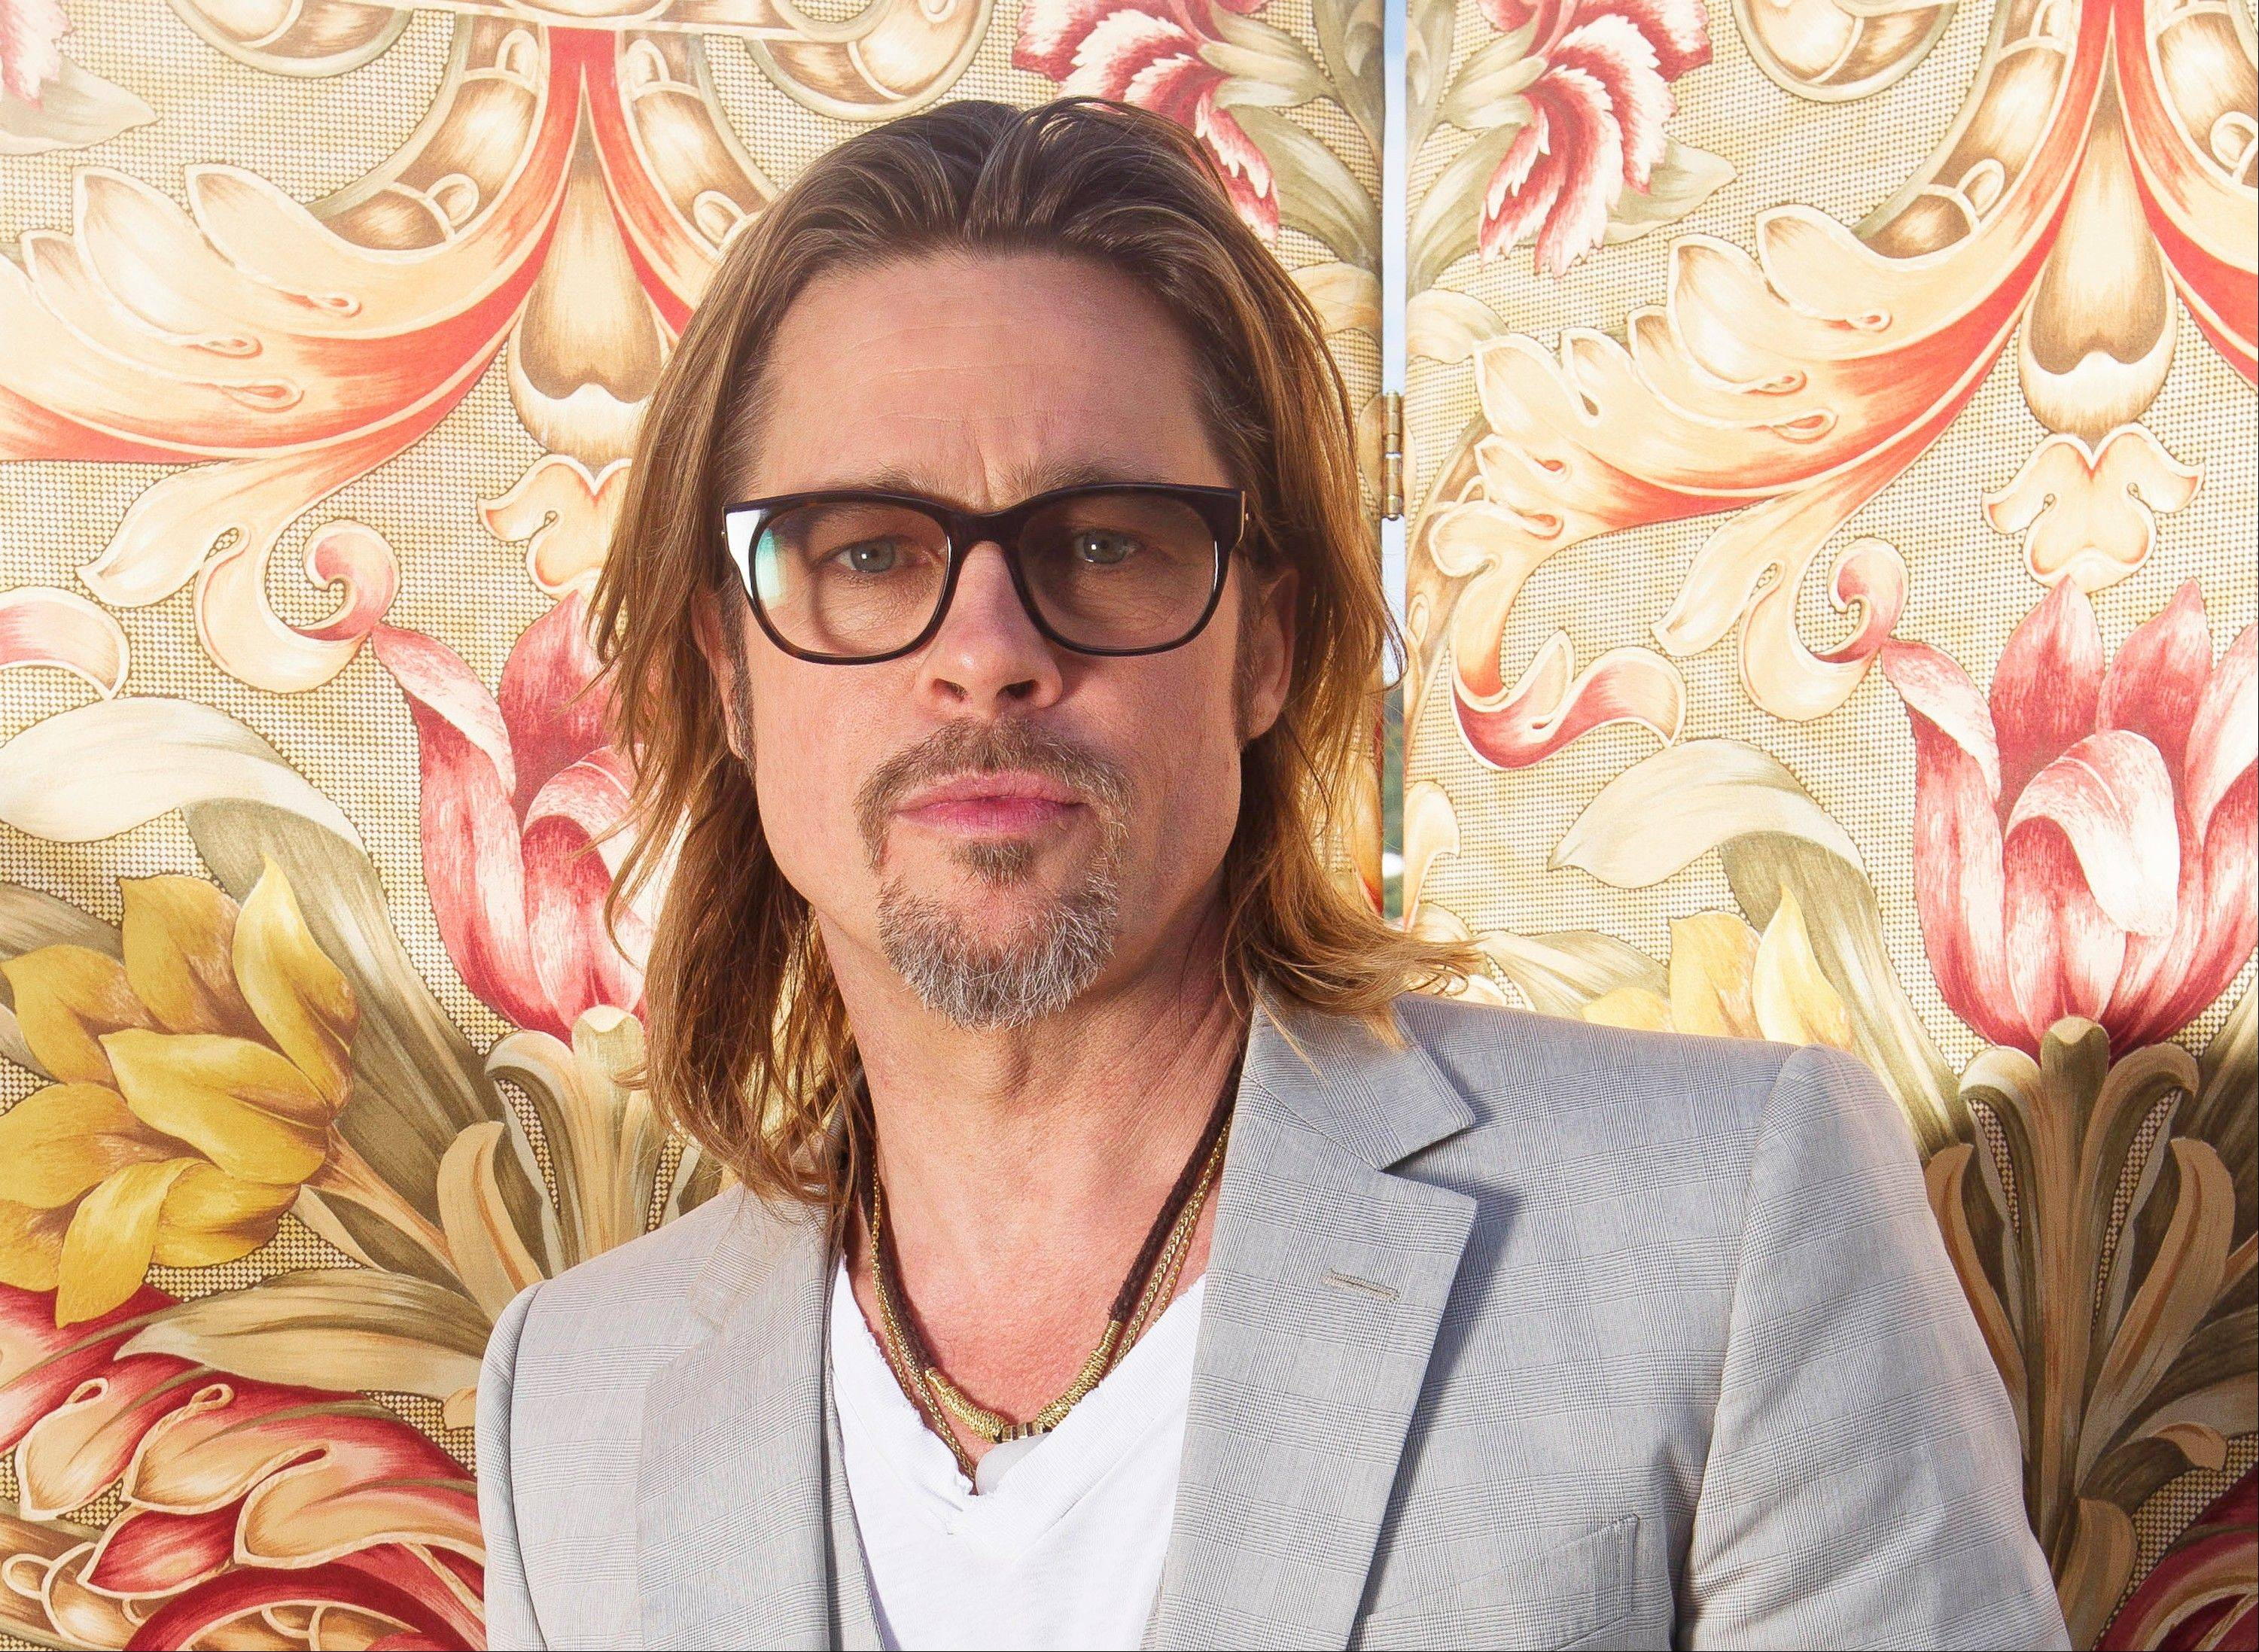 Actor Brad Pitt has donated $100,000 to help the Human Rights Campaign raise money for its efforts to support same-sex marriage initiatives in several states.